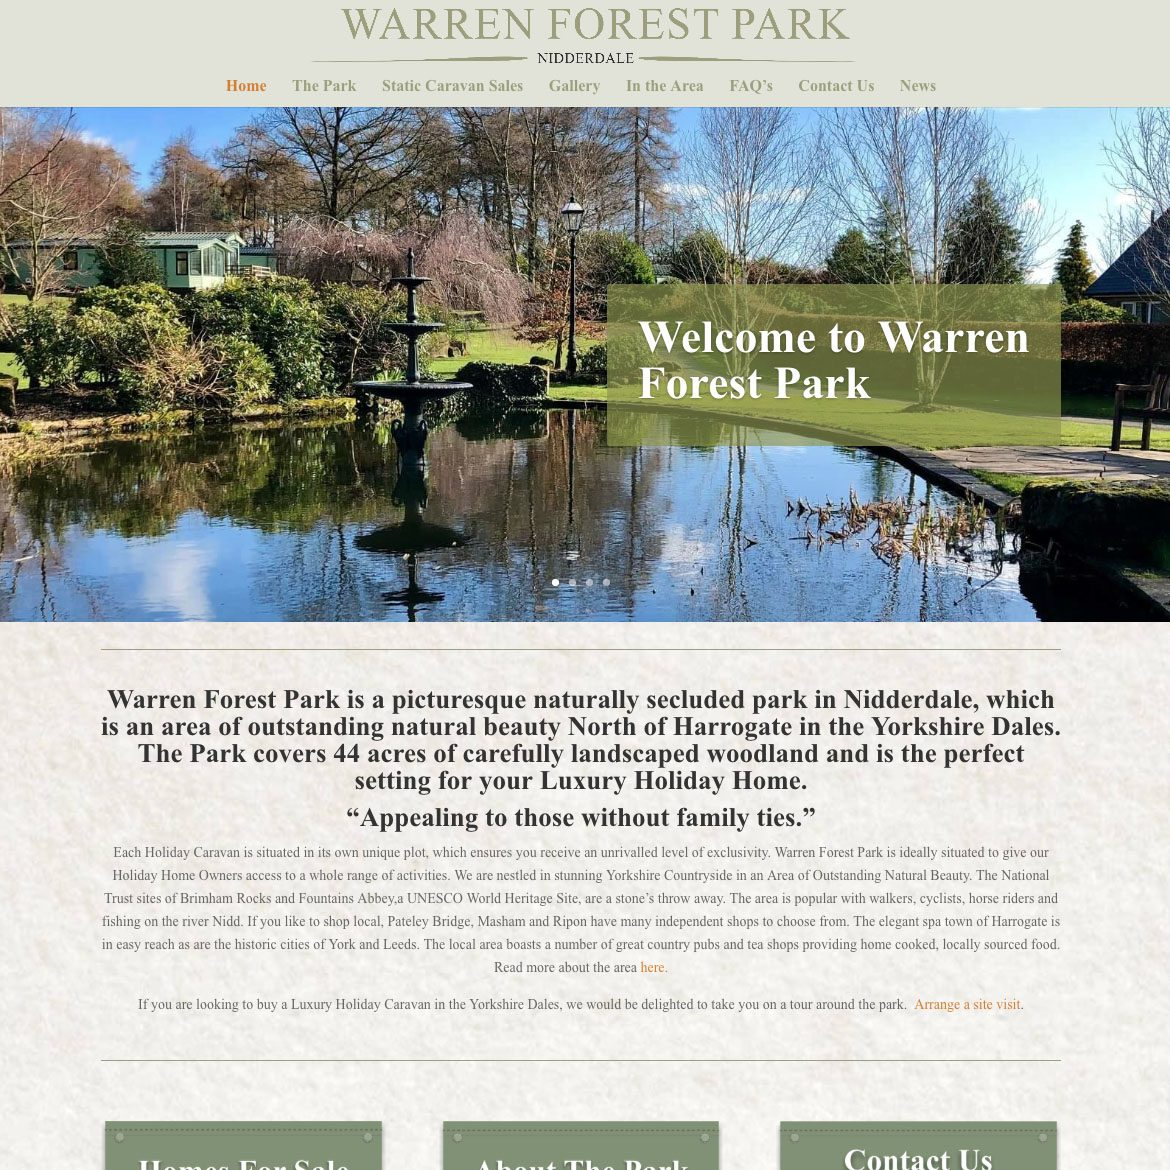 Warren Forest Park - Colour It In